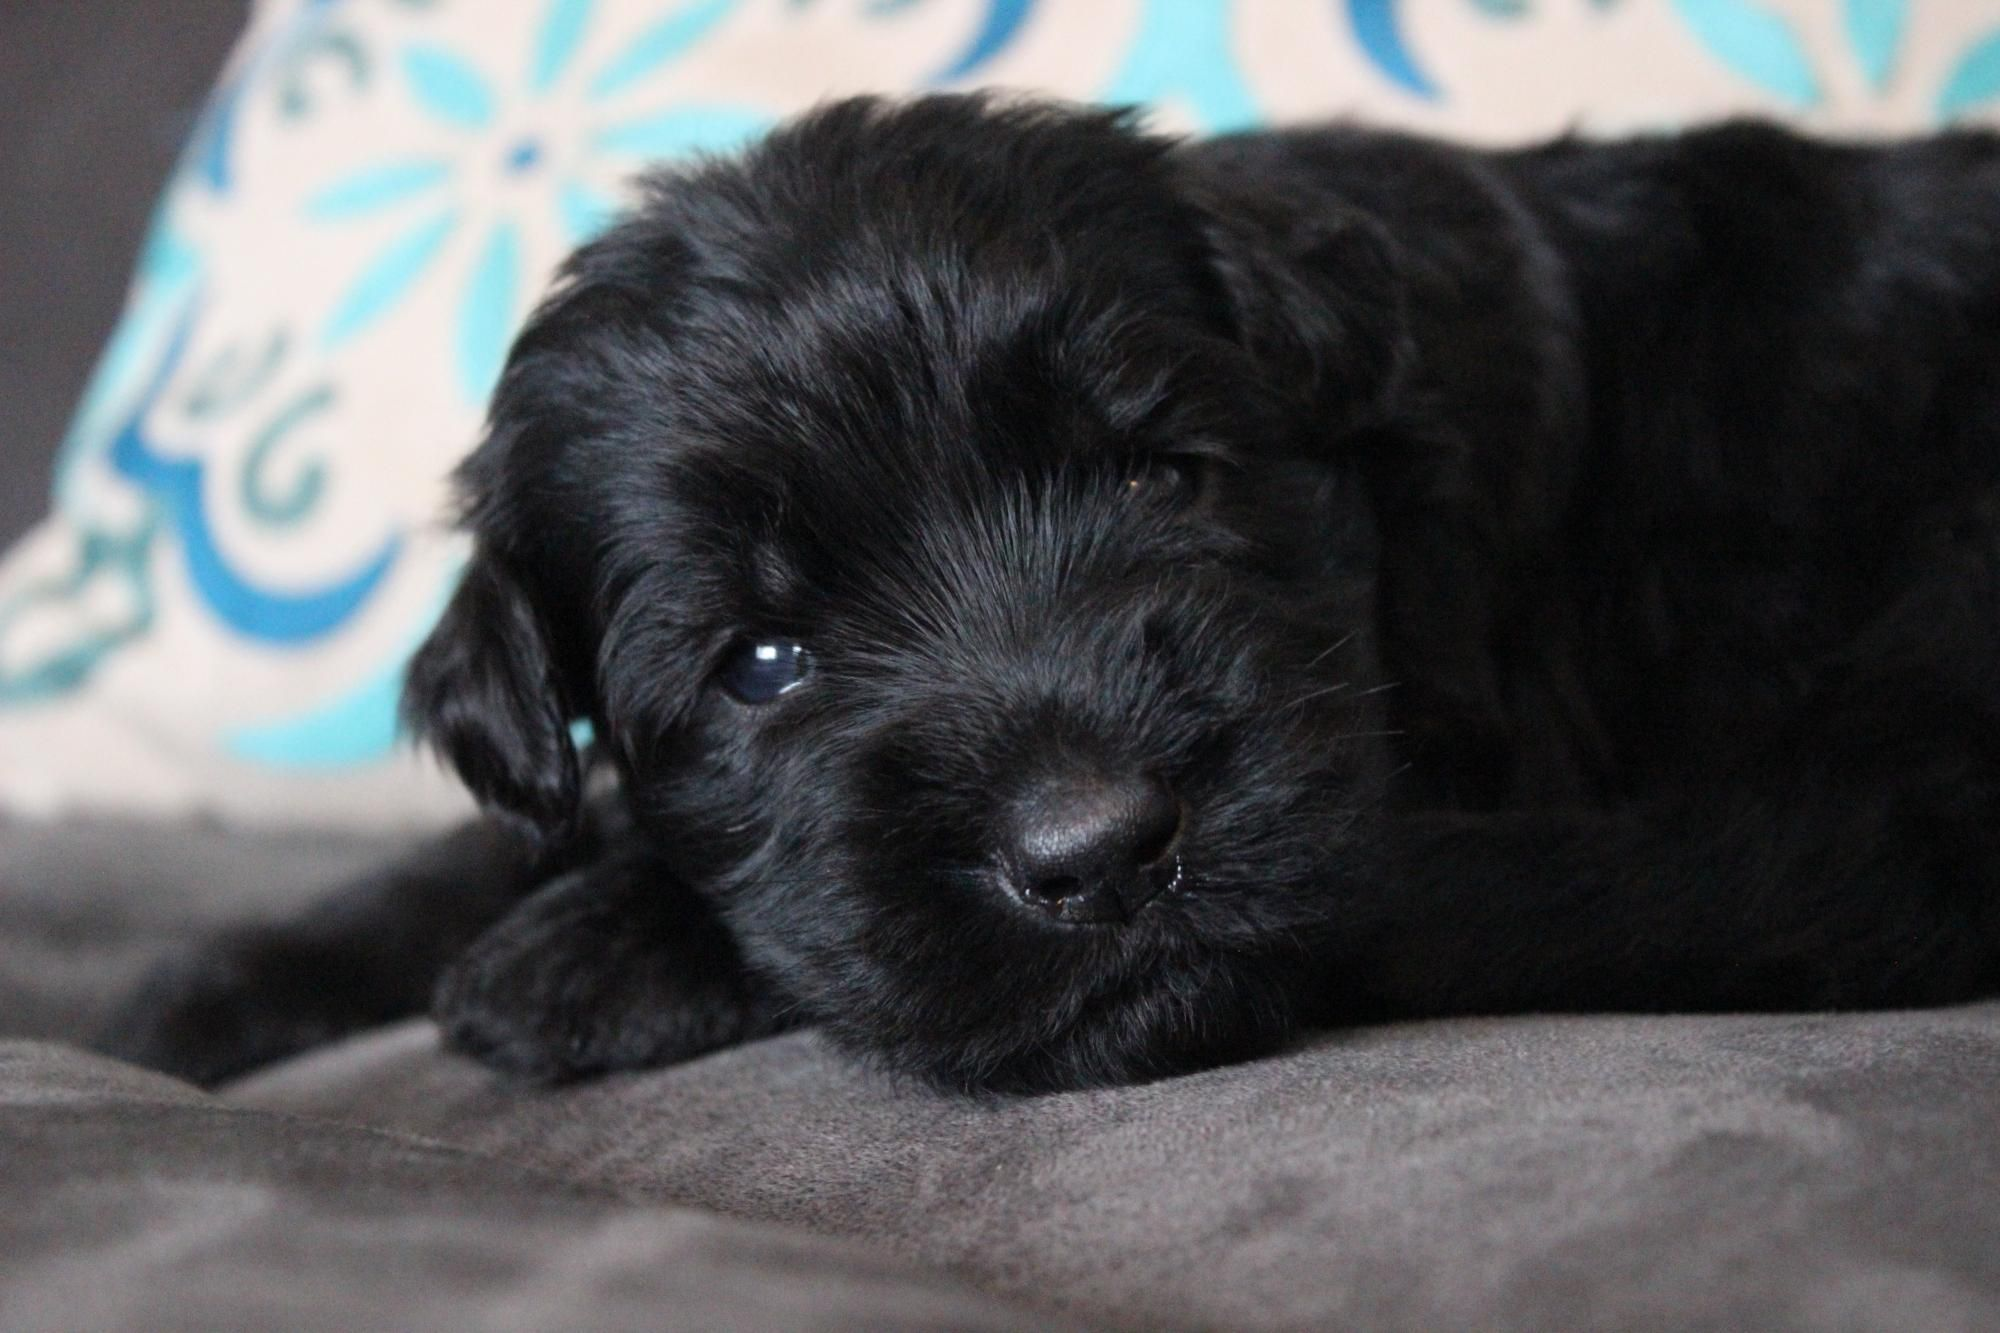 Giant Schnoodle Breeder In Utah High Quality Extraordinarily Pups From Fishburn Homestead Kennel Www Fishburnhomestead C Schnoodle Kennel Puppies For Sale